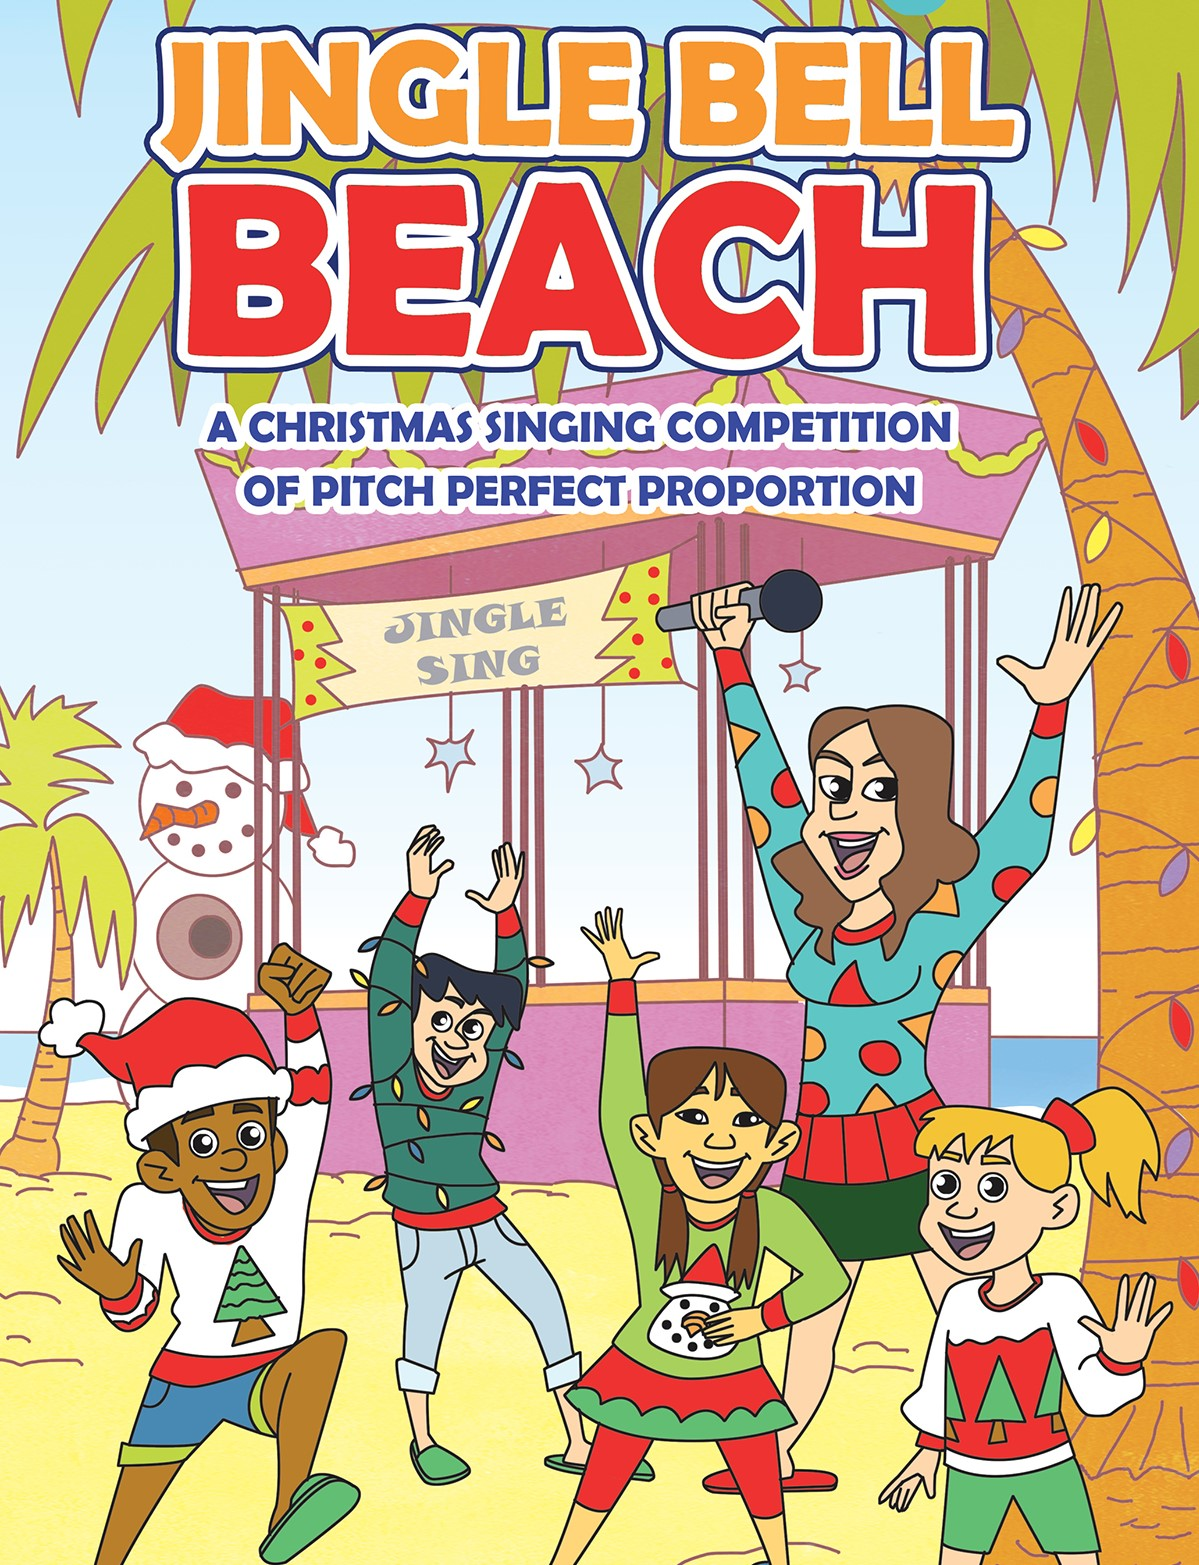 Wednesday, December 13, 6:30 pm  - JINGLE BELL BEACHA Children's Christmas MusicalDinner will take place as usual at 6:00 pmAll other classes will be suspended for the evening.